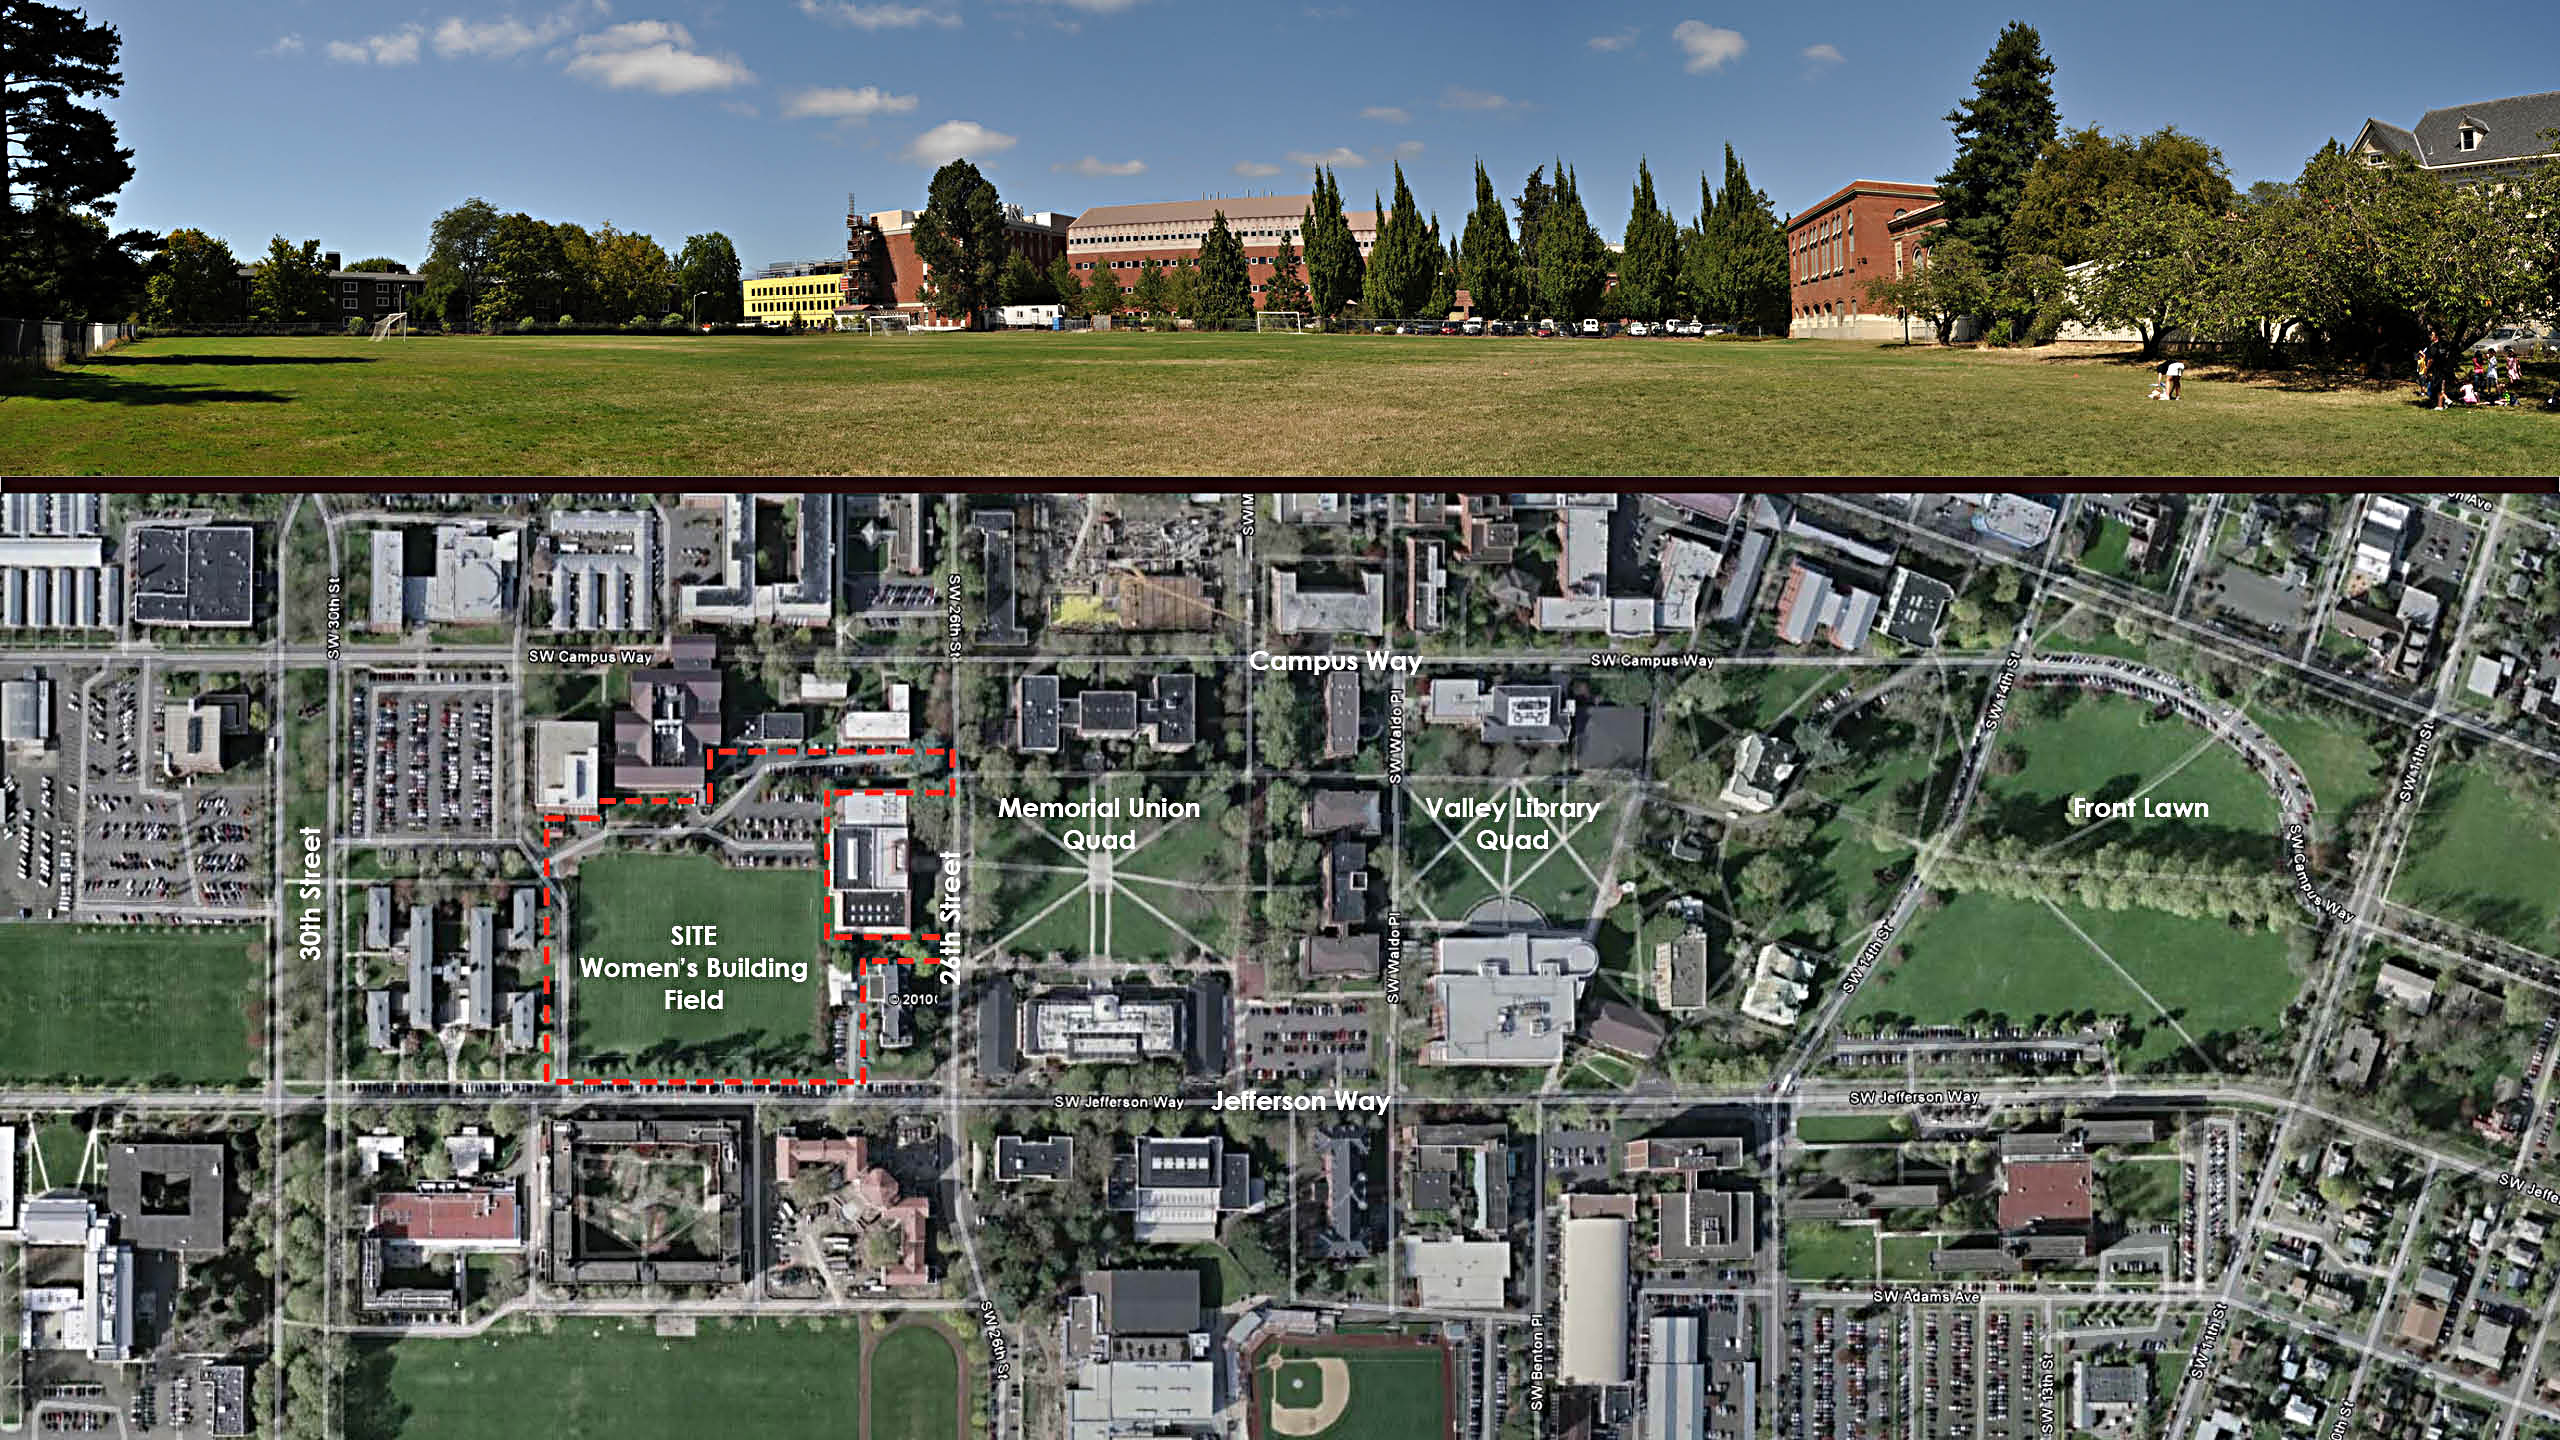 Women's Field Quad, College of Business Planning Study at Oregon State University / image 1